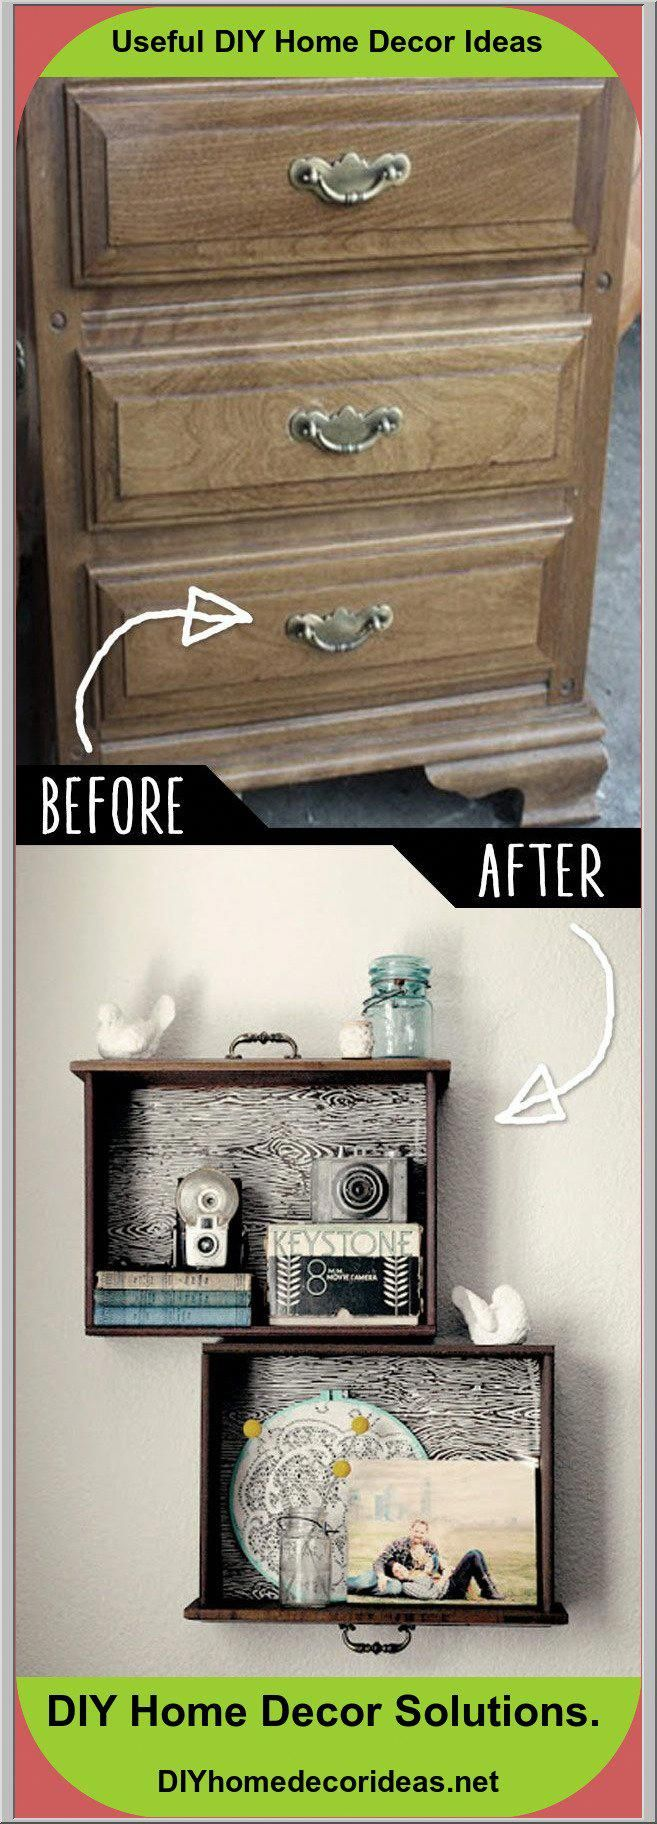 39 Clever Do It Yourself Furniture Hacks – Web Page 3 of 8 – DIY Happiness DIY F…